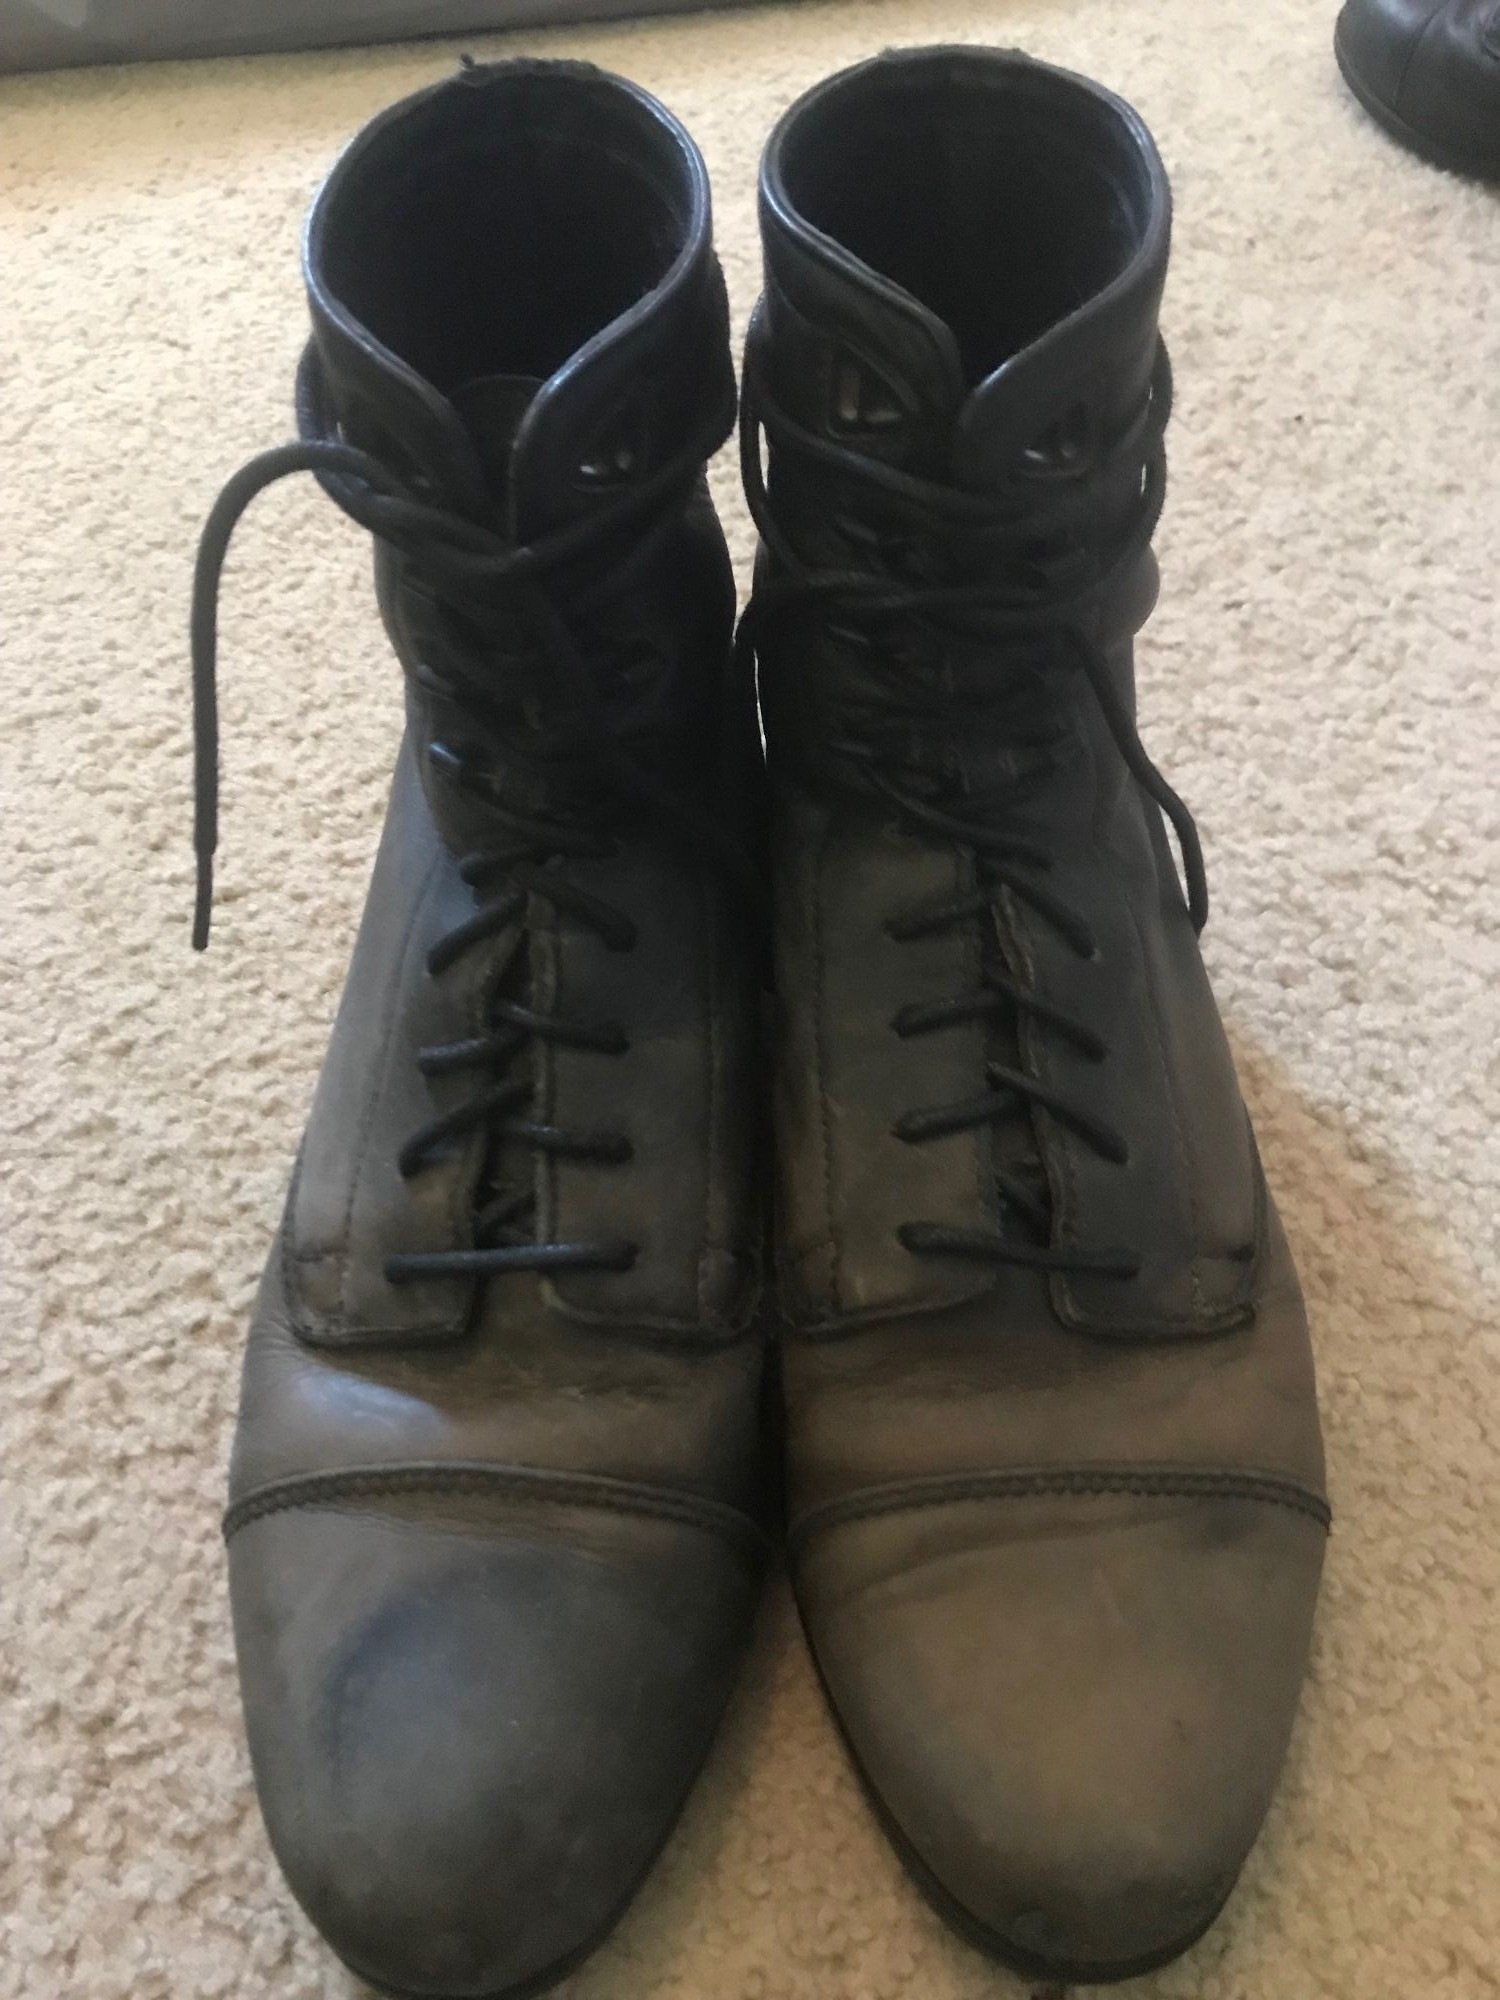 Used Ariat Paddock Boots-Used Women's 8